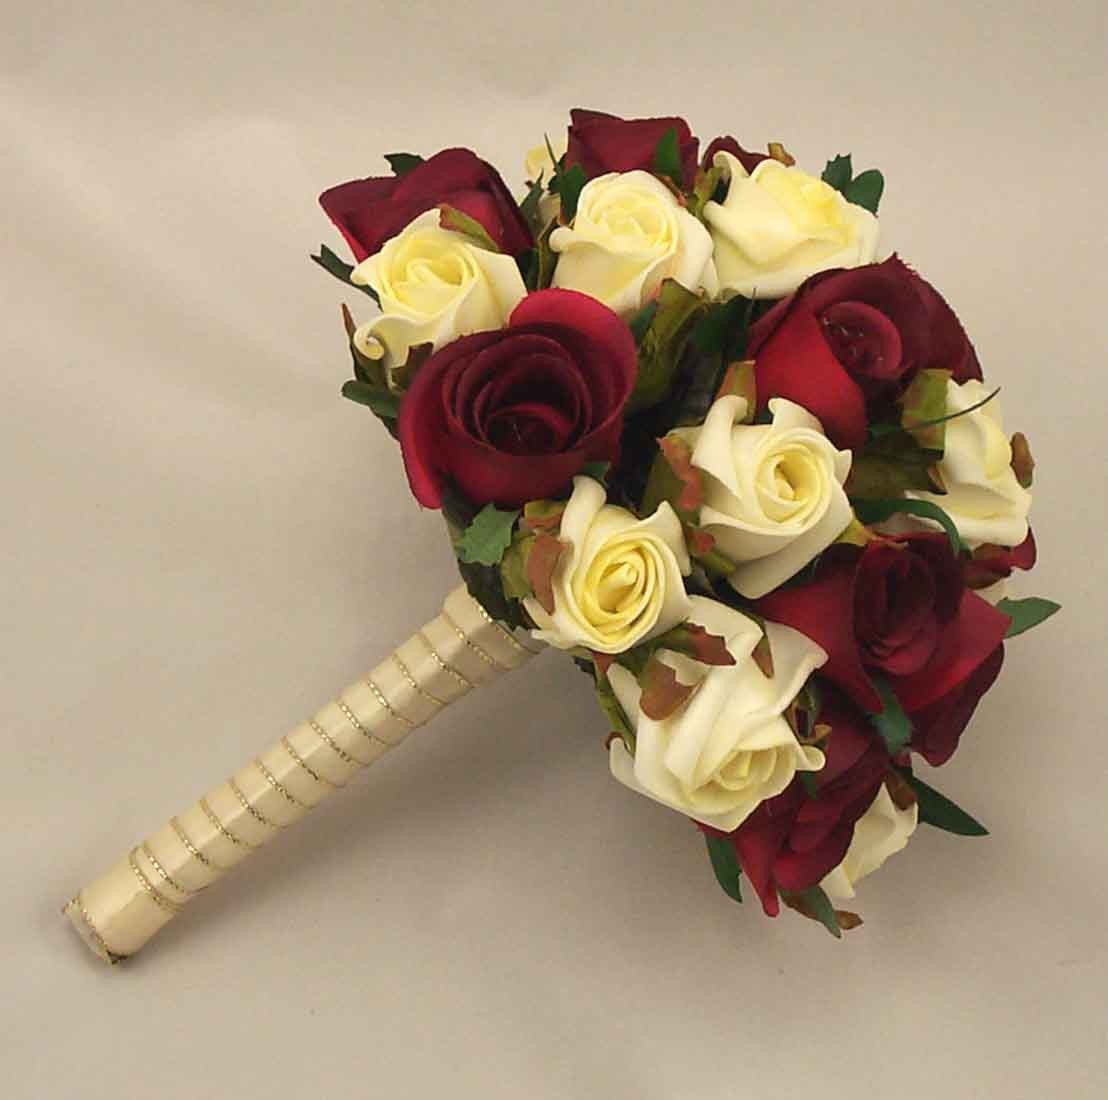 Burgundy Roses Bouquet Related Keywords Suggestions Burgundy Roses